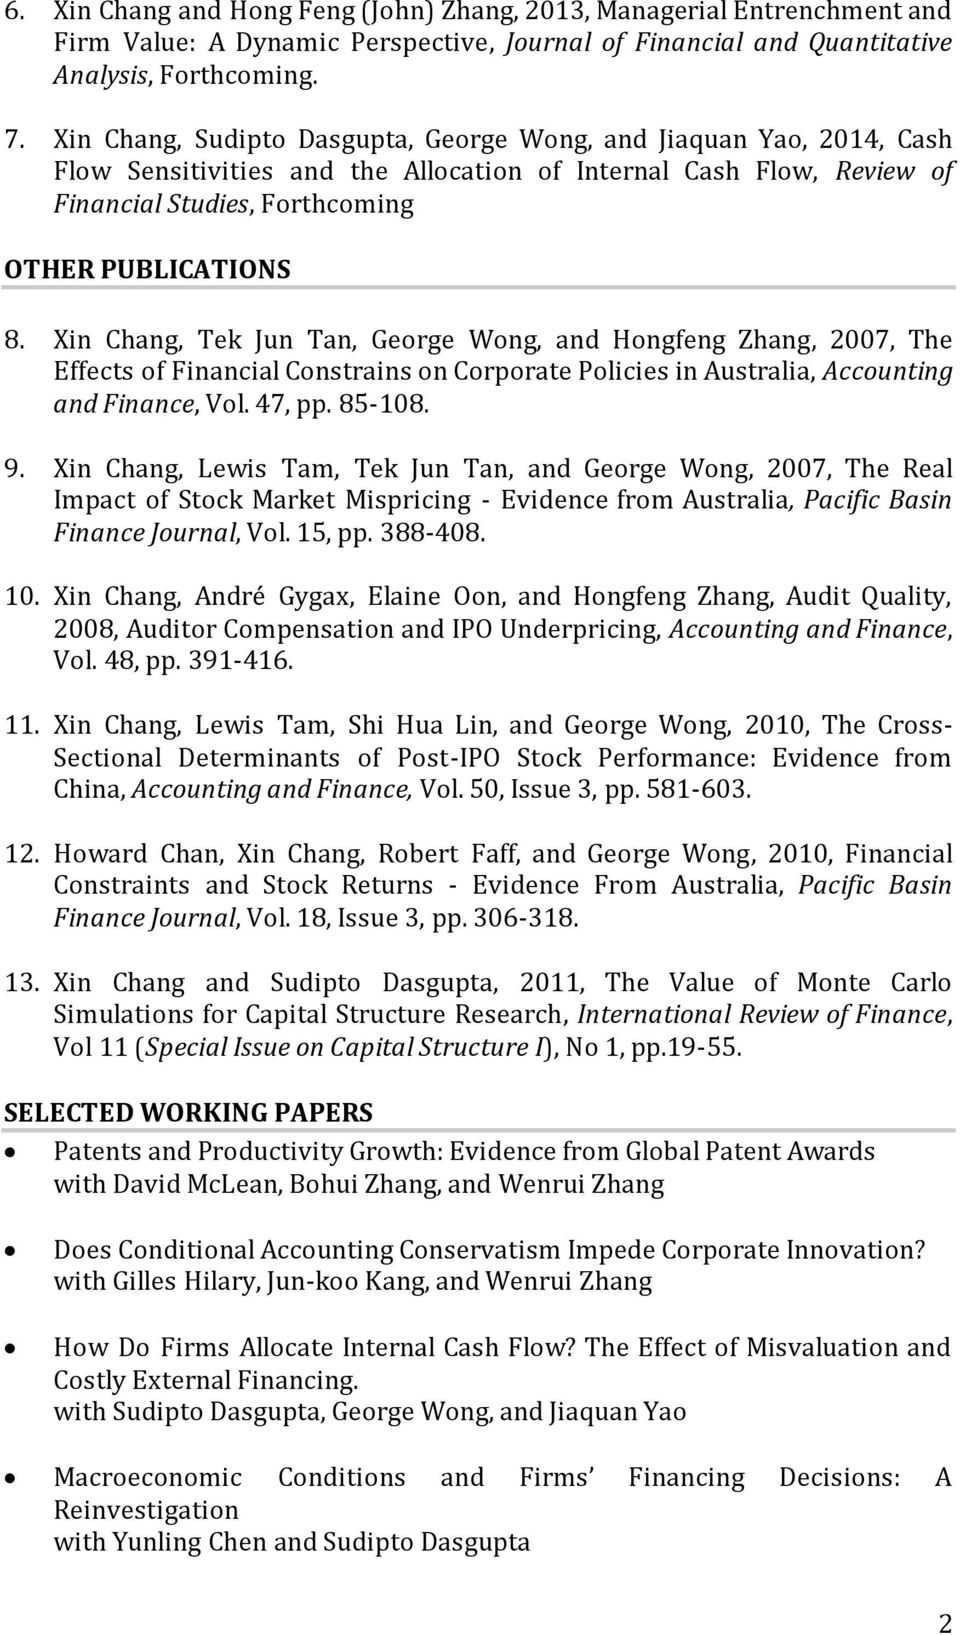 Xin Chang, Tek Jun Tan, George Wong, and Hongfeng Zhang, 2007, The Effects of Financial Constrains on Corporate Policies in Australia, Accounting and Finance, Vol. 47, pp. 85-108. 9.